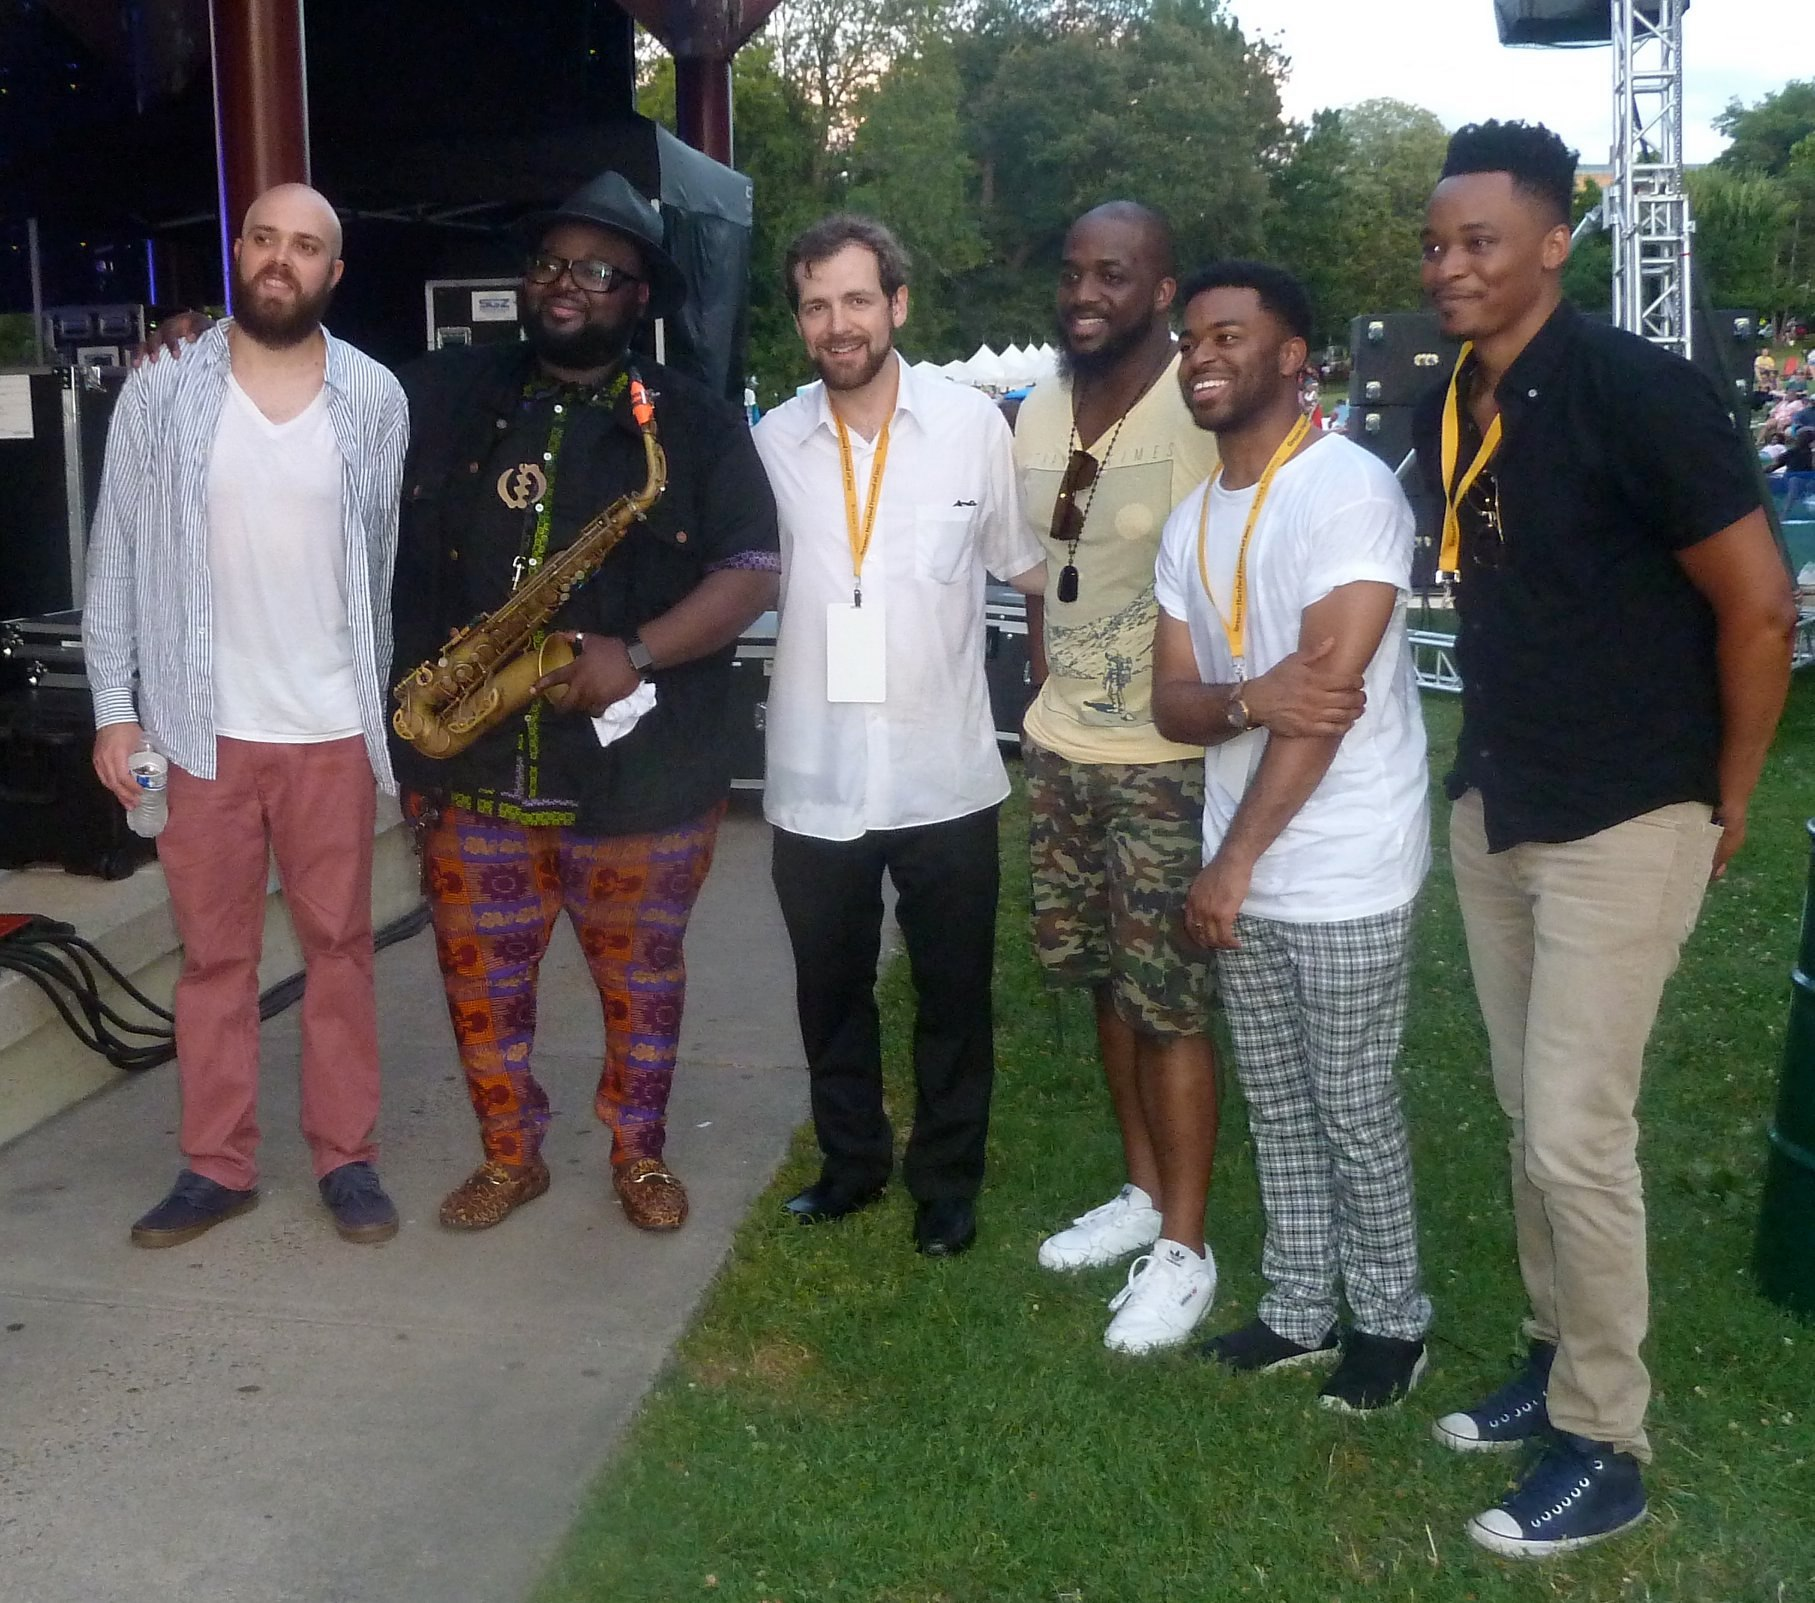 Hartford Jazz Festival